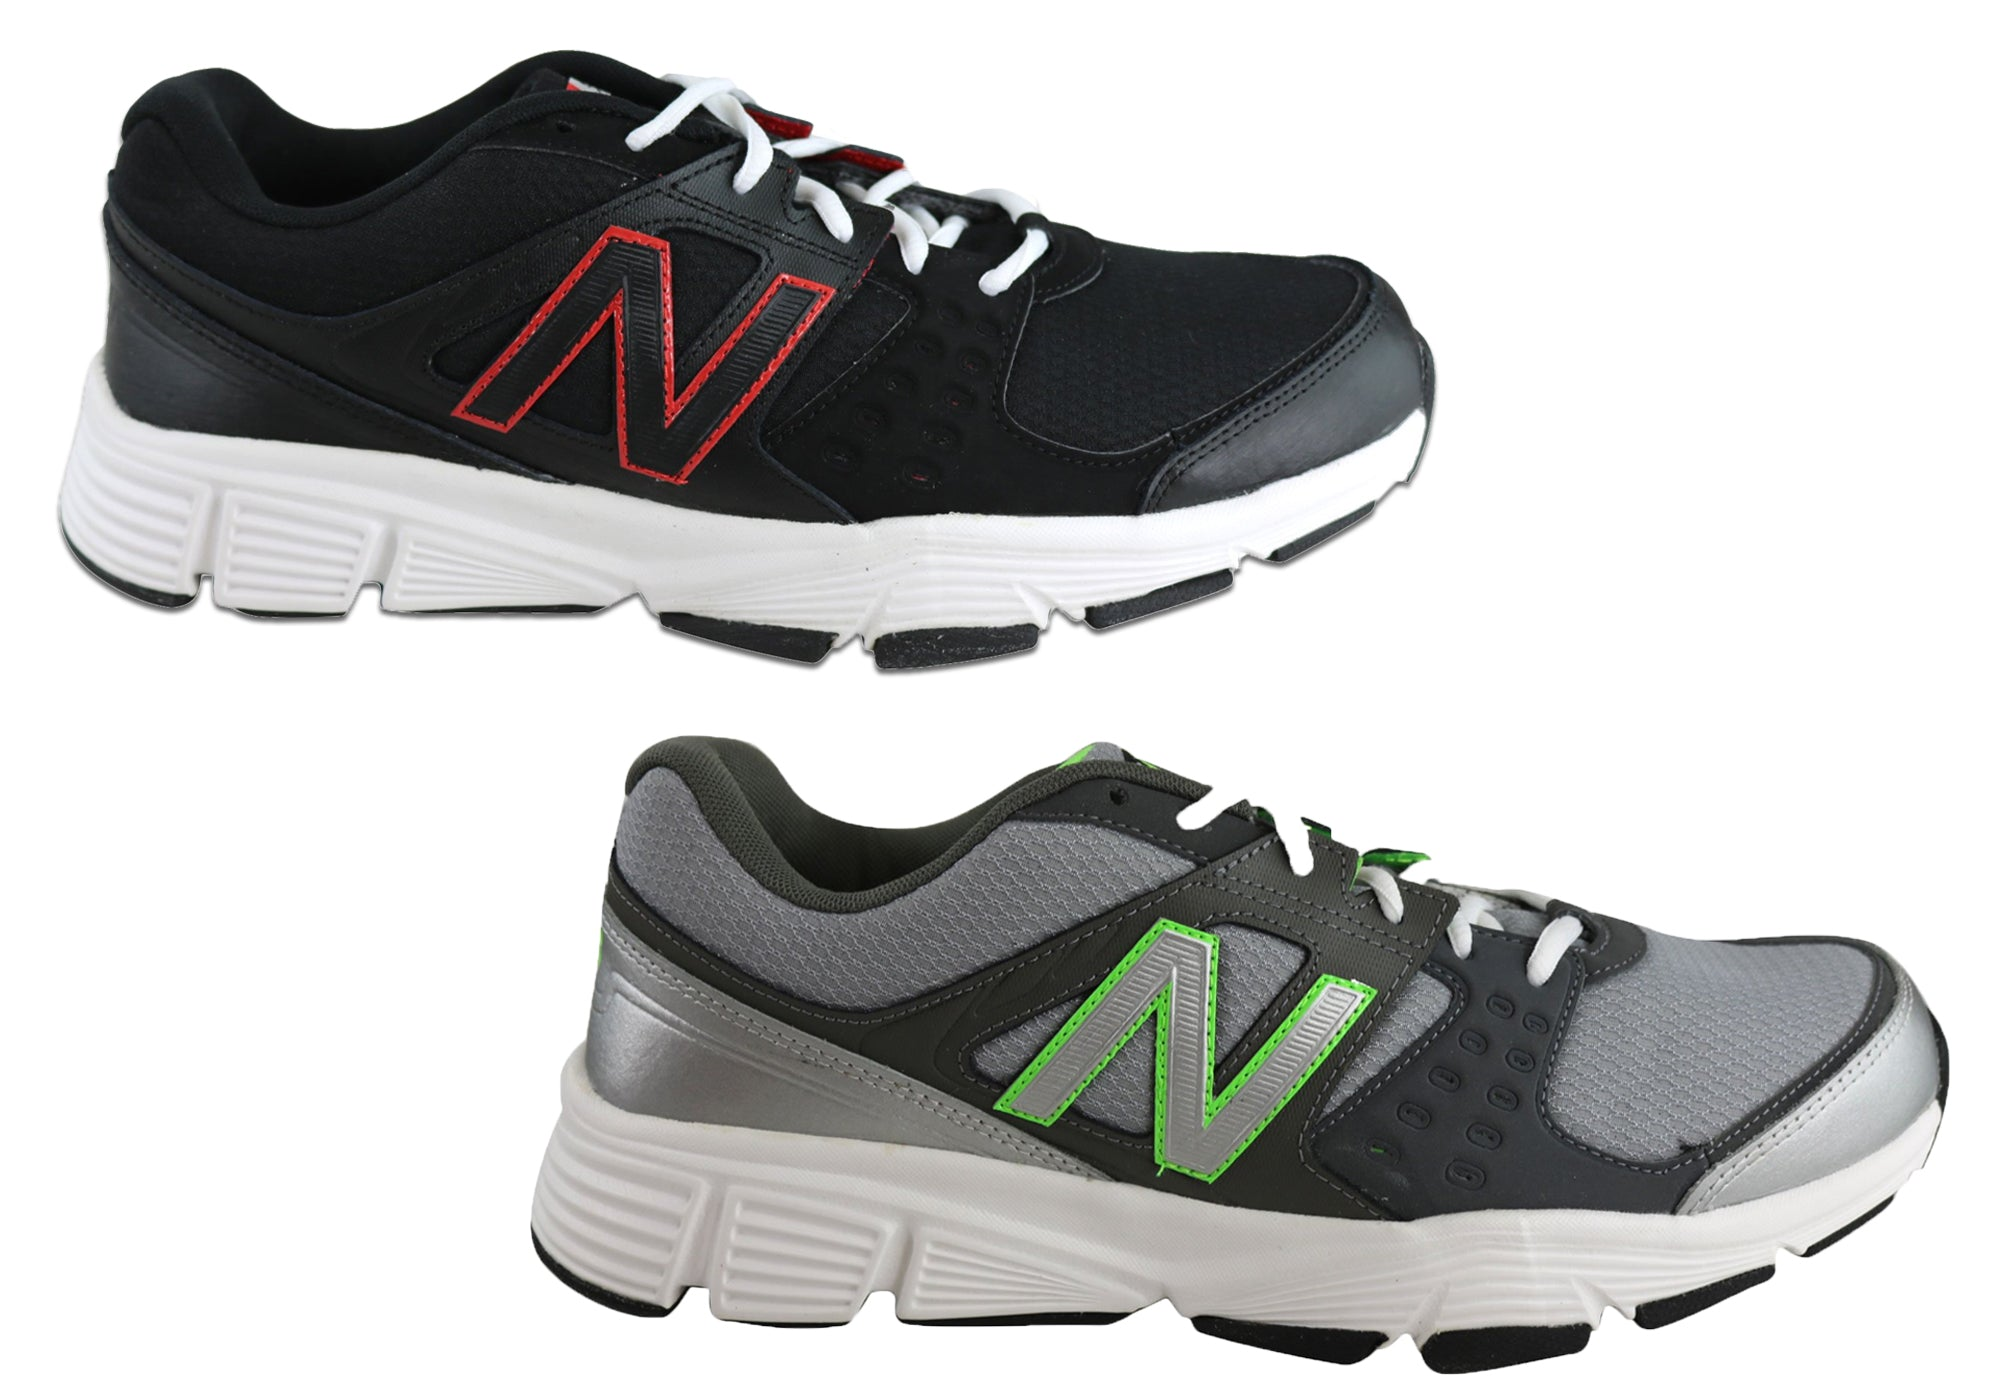 0ae6236dd224 57b1d 2145a  coupon for new new balance 577 mens comfortable cushioned  running sports shoes 64163 a27c8